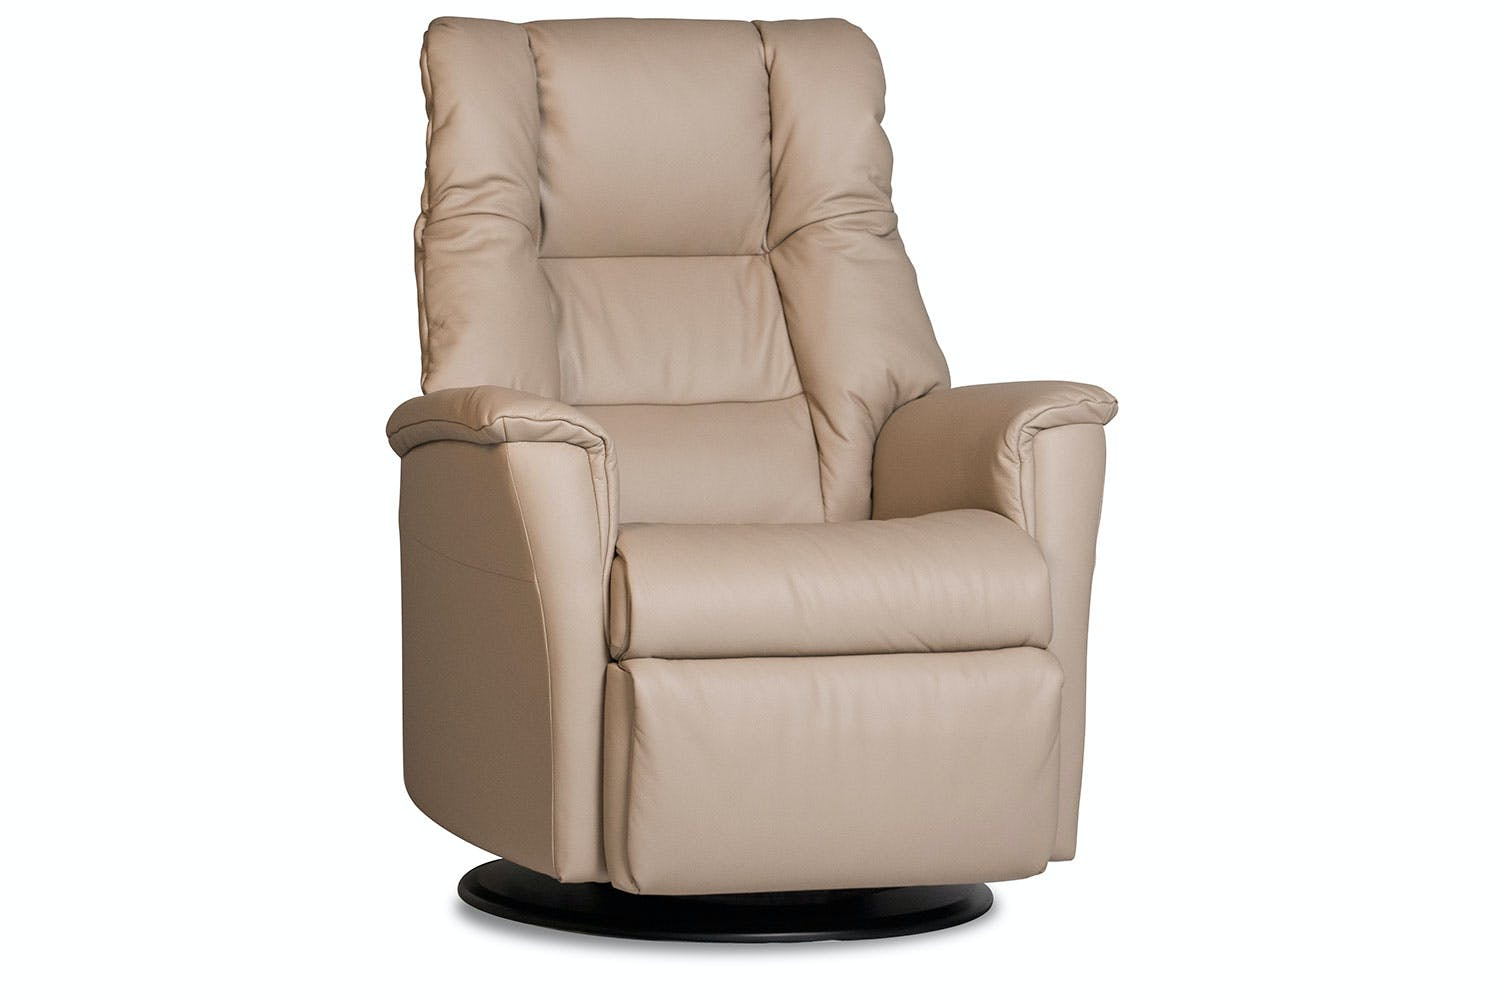 victor leather recliner chair prime img harvey norman new zealand